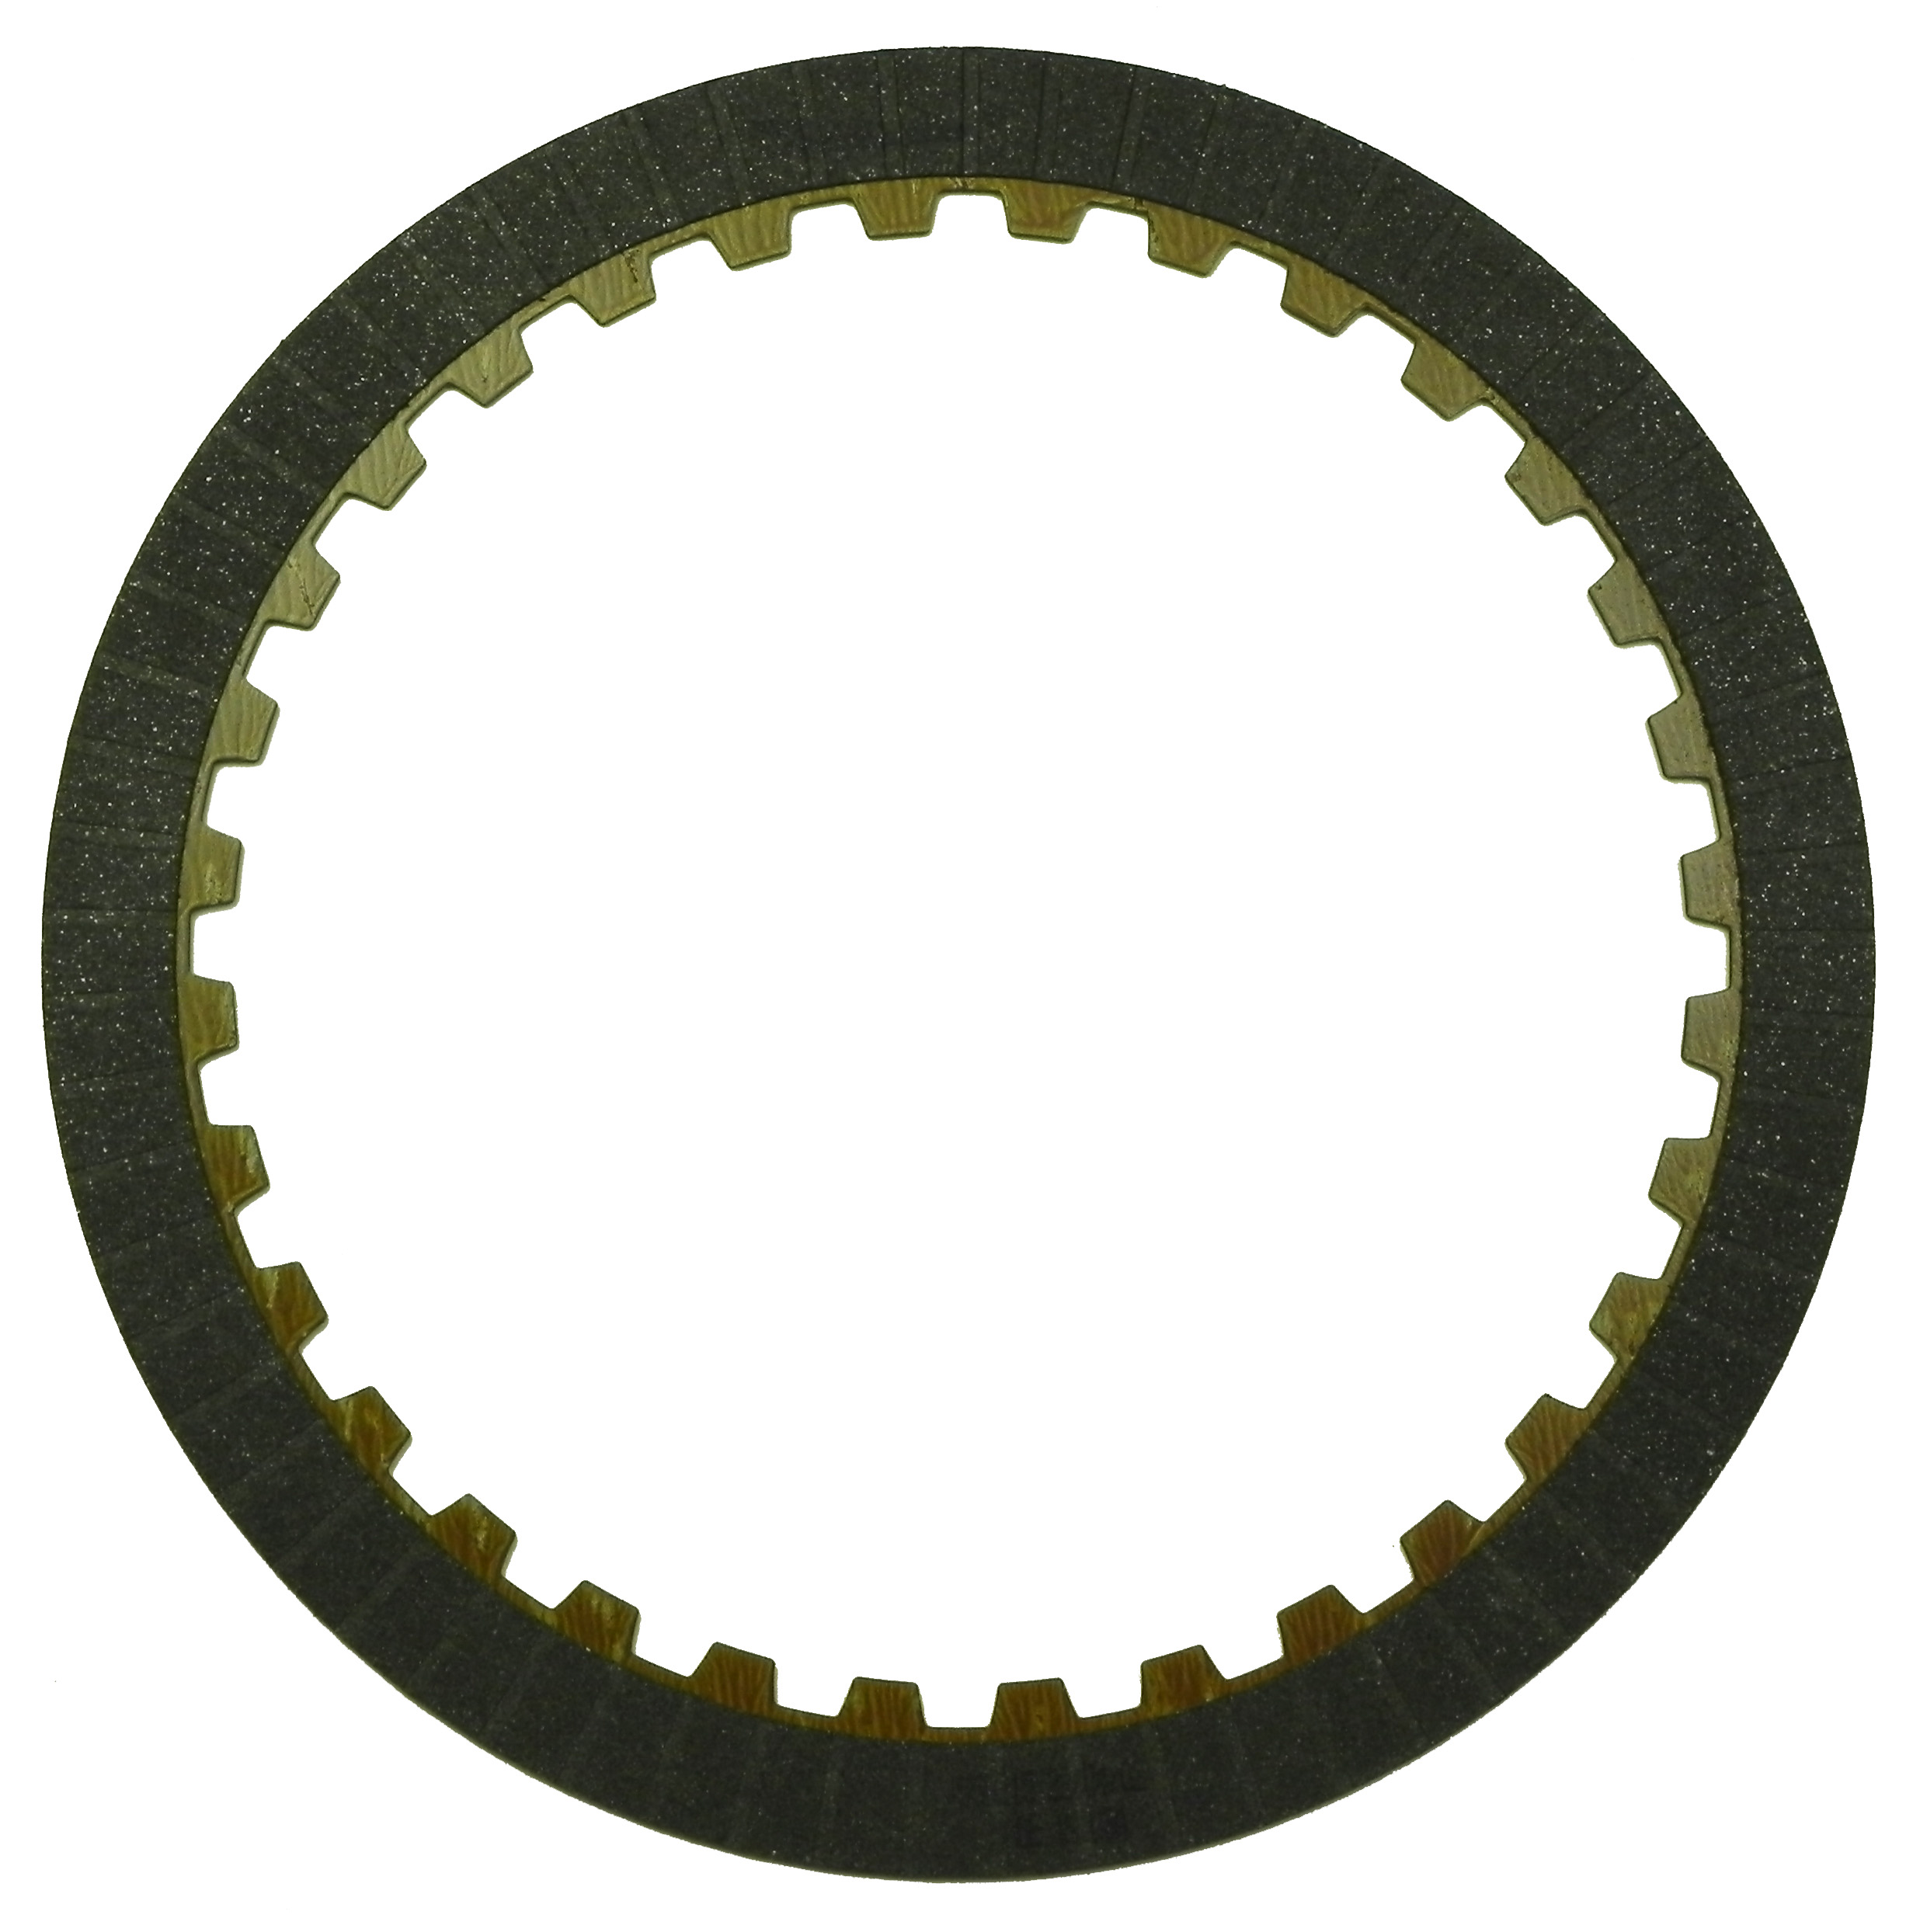 45RFE, 545RFE, 65RFE, 66RFE High Energy Friction Clutch Plate